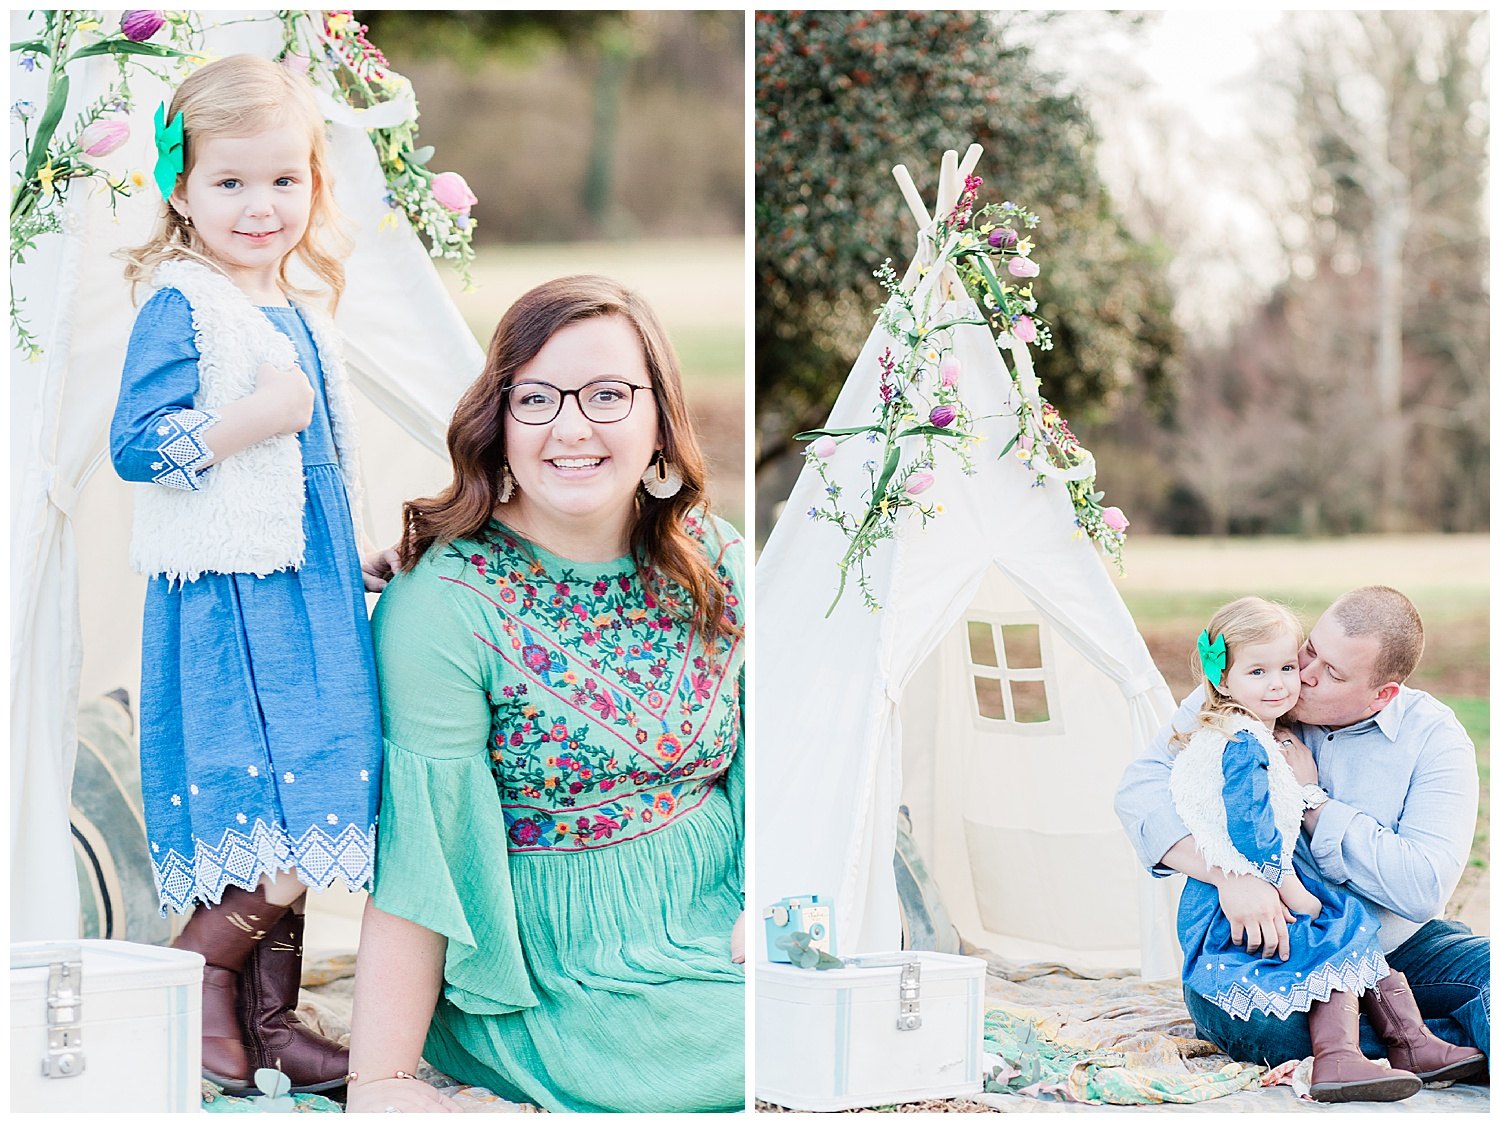 Teepee family photos - Richmond, Virginia